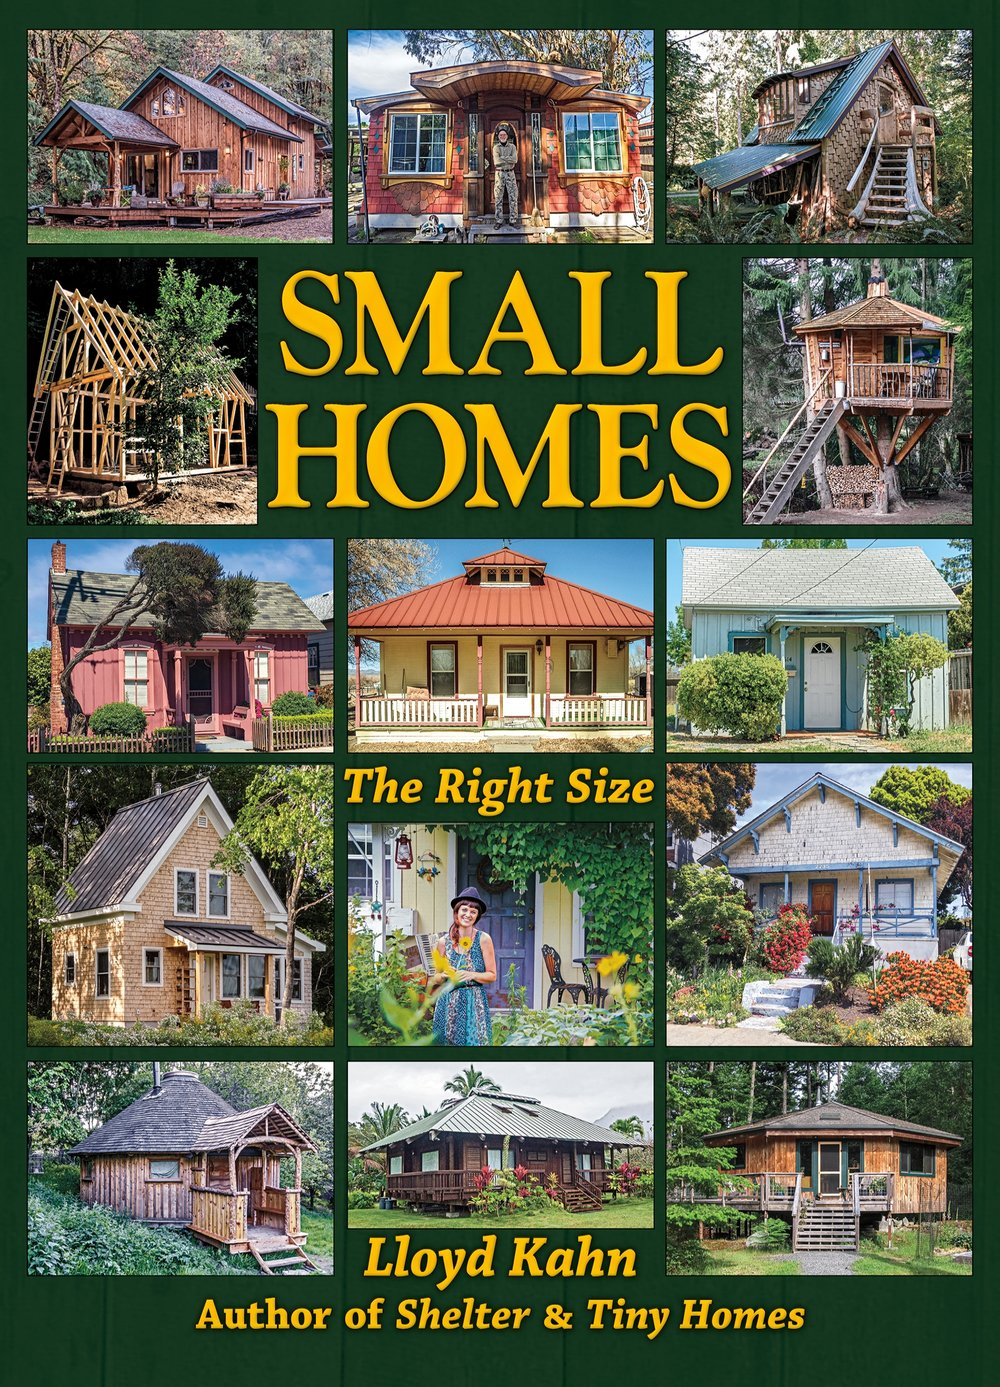 The most recent entry in Shelter's Library of Building Books, this covers homes  from 400-1200 sq. ft. Smaller than a typical American home, and larger than a tiny home — just right! There are 65 buildings shown, with a variety of designs, materials, and locations.